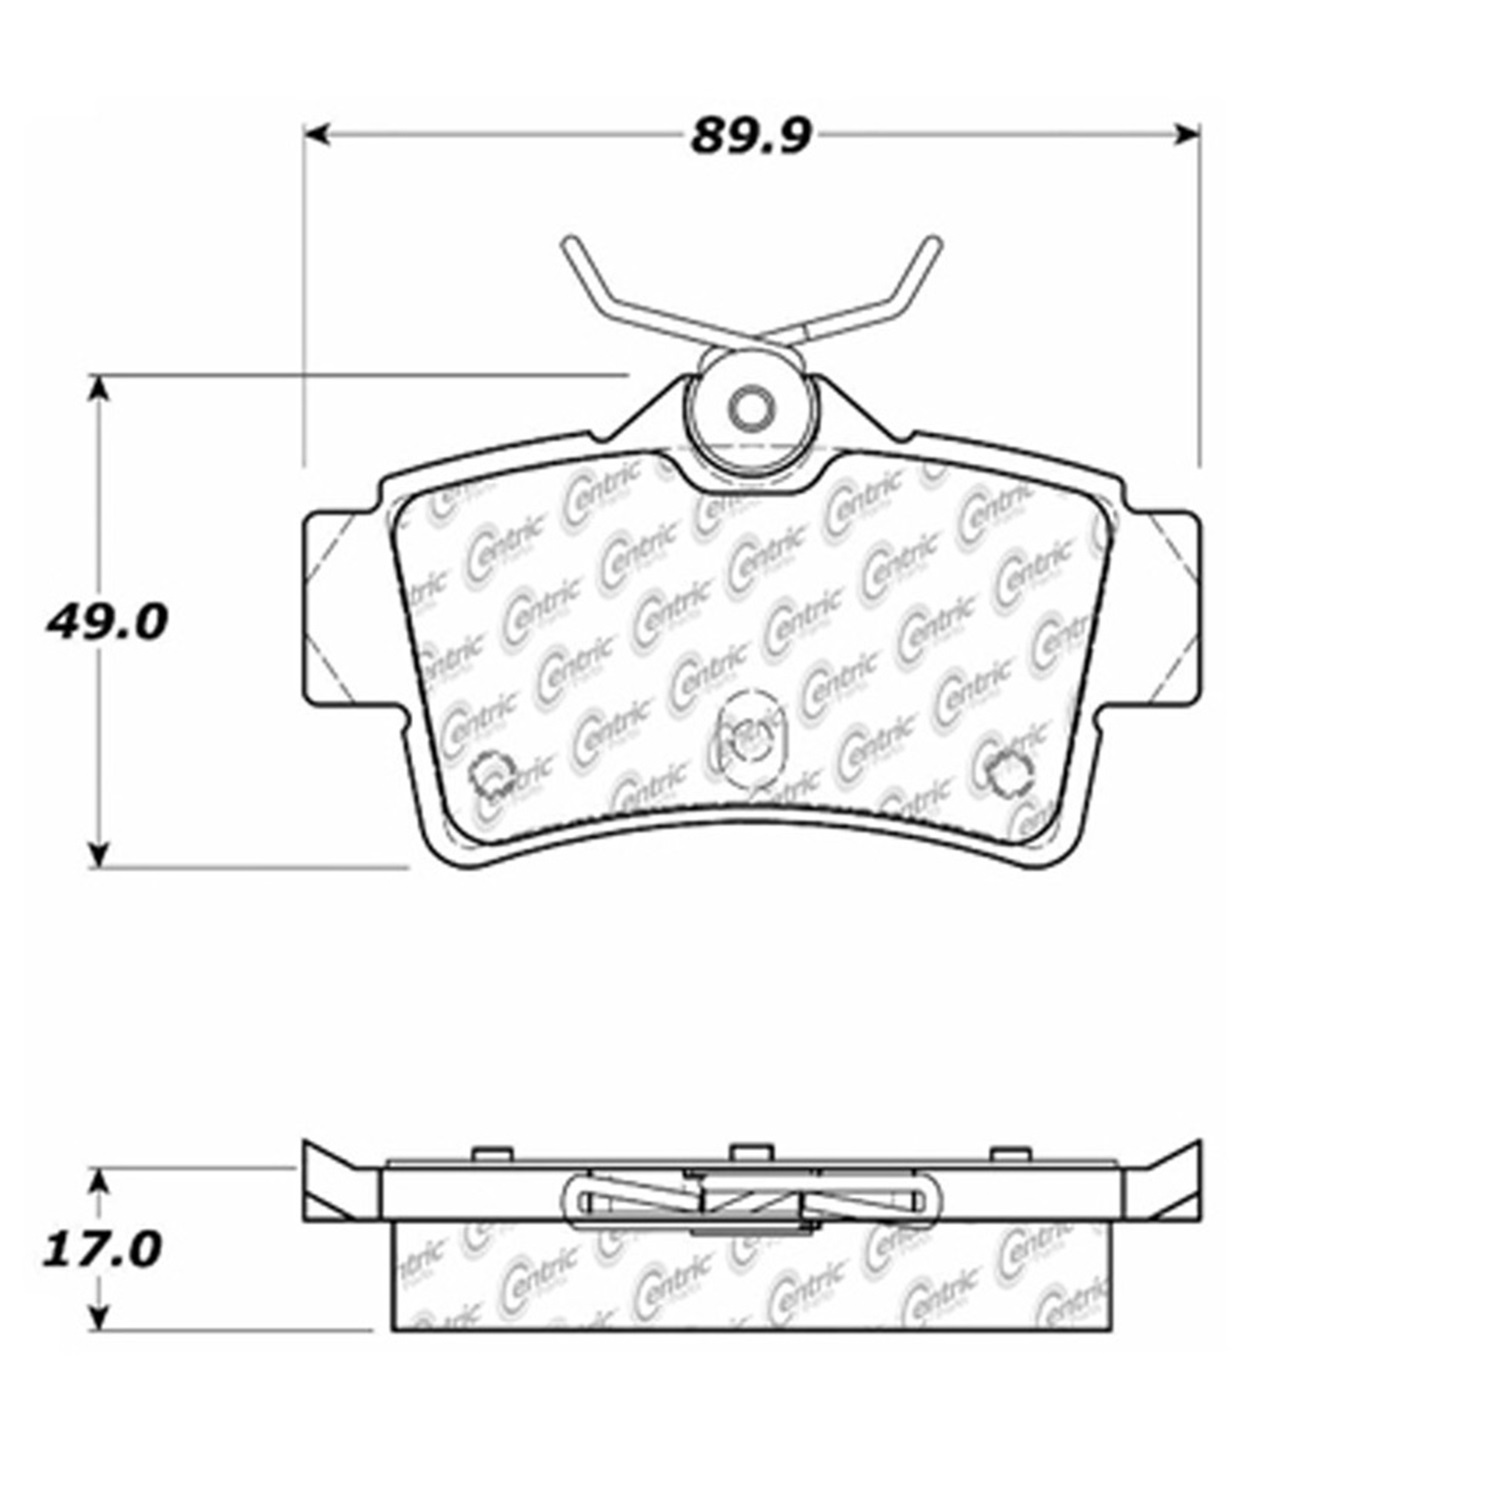 StopTech 105.06270 Disc Brake Pad Fits 94-04 Mustang